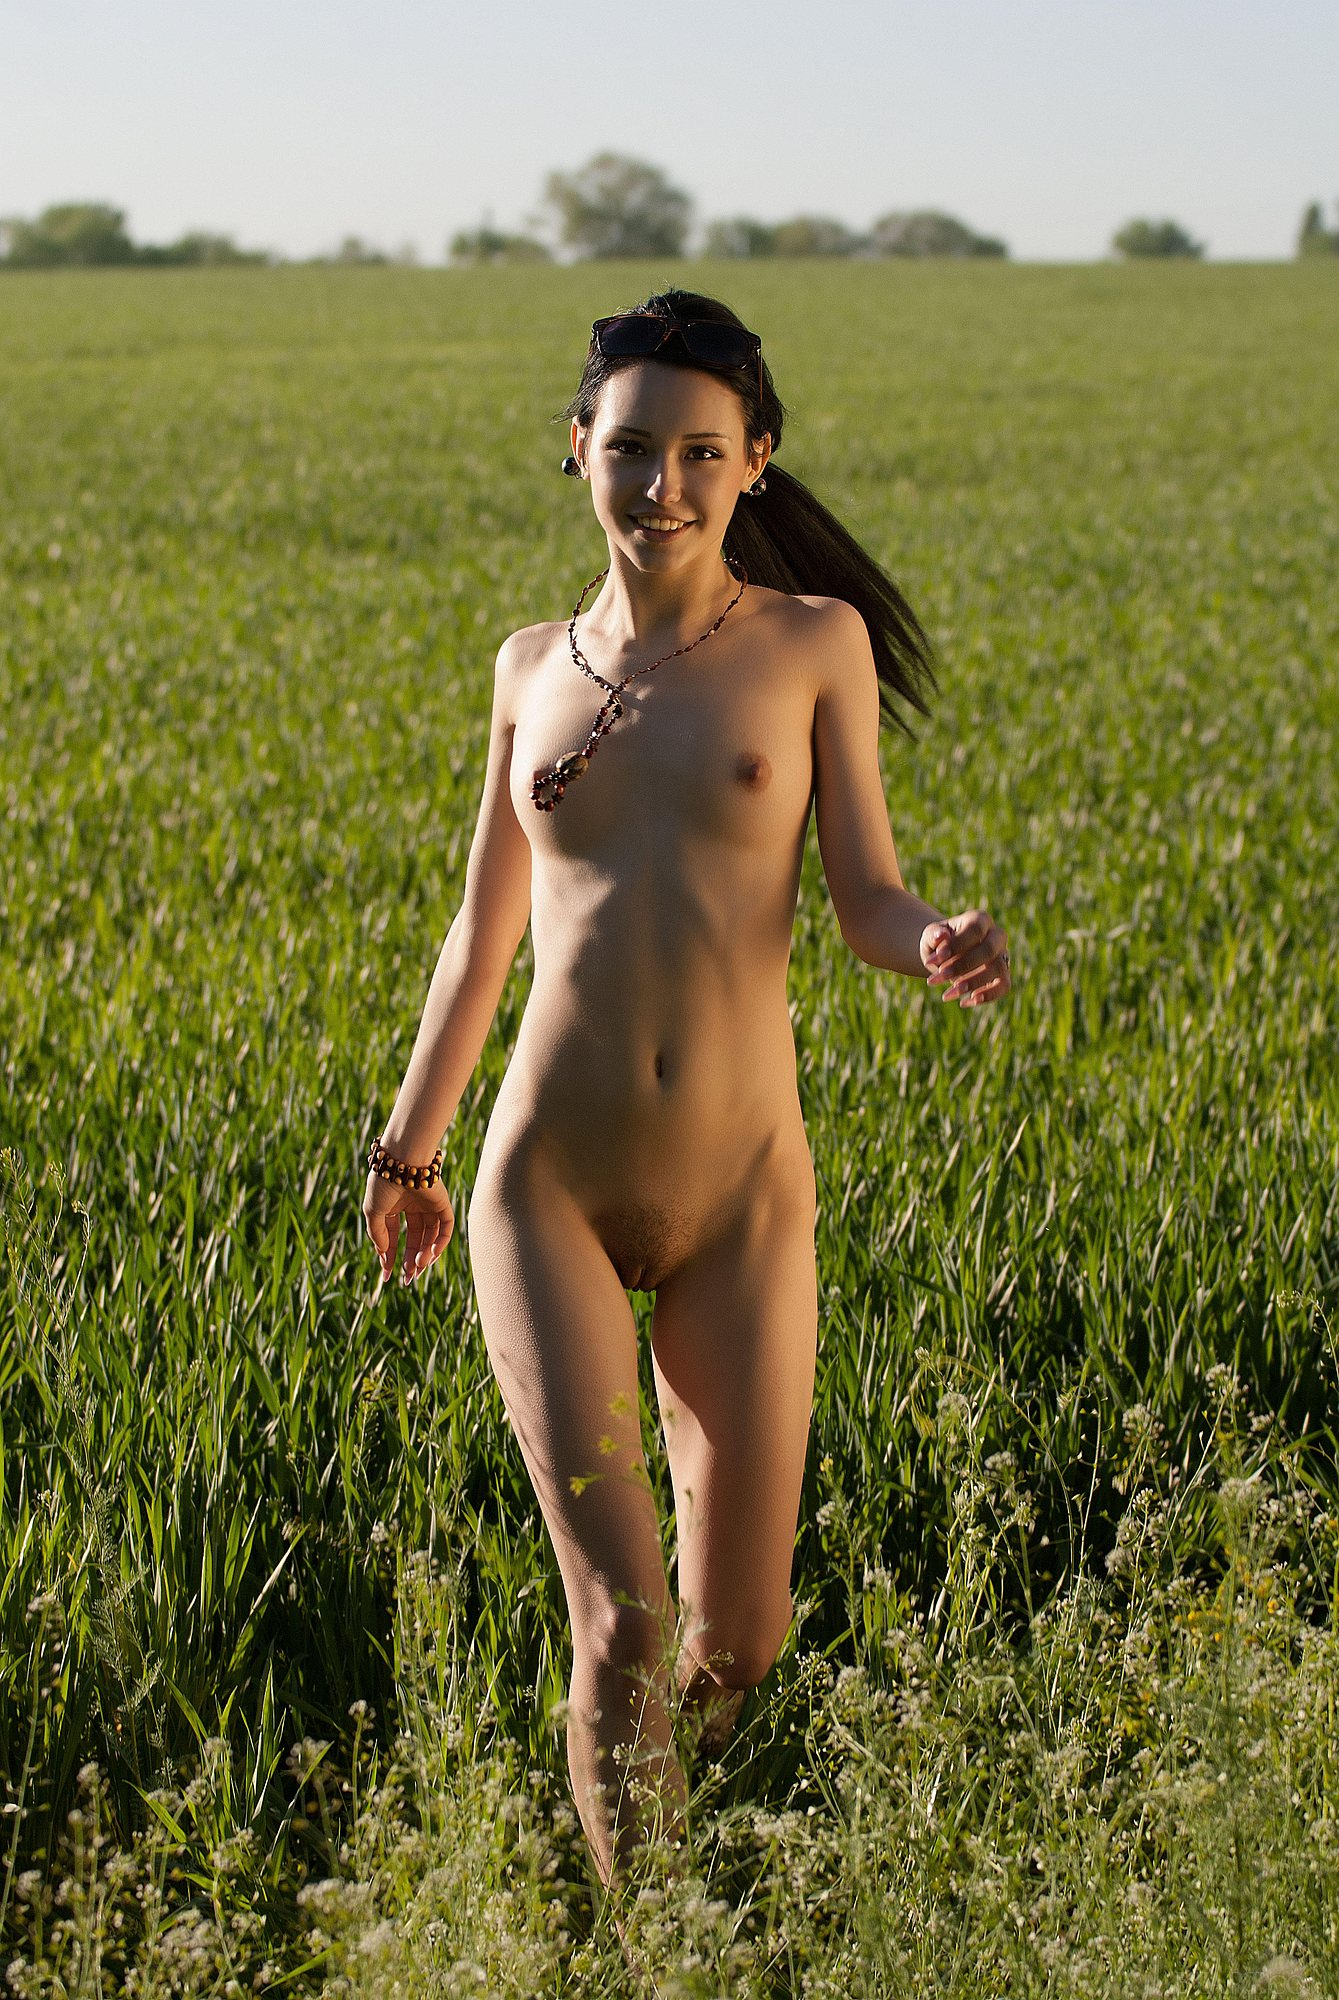 Nude Women Running Naked